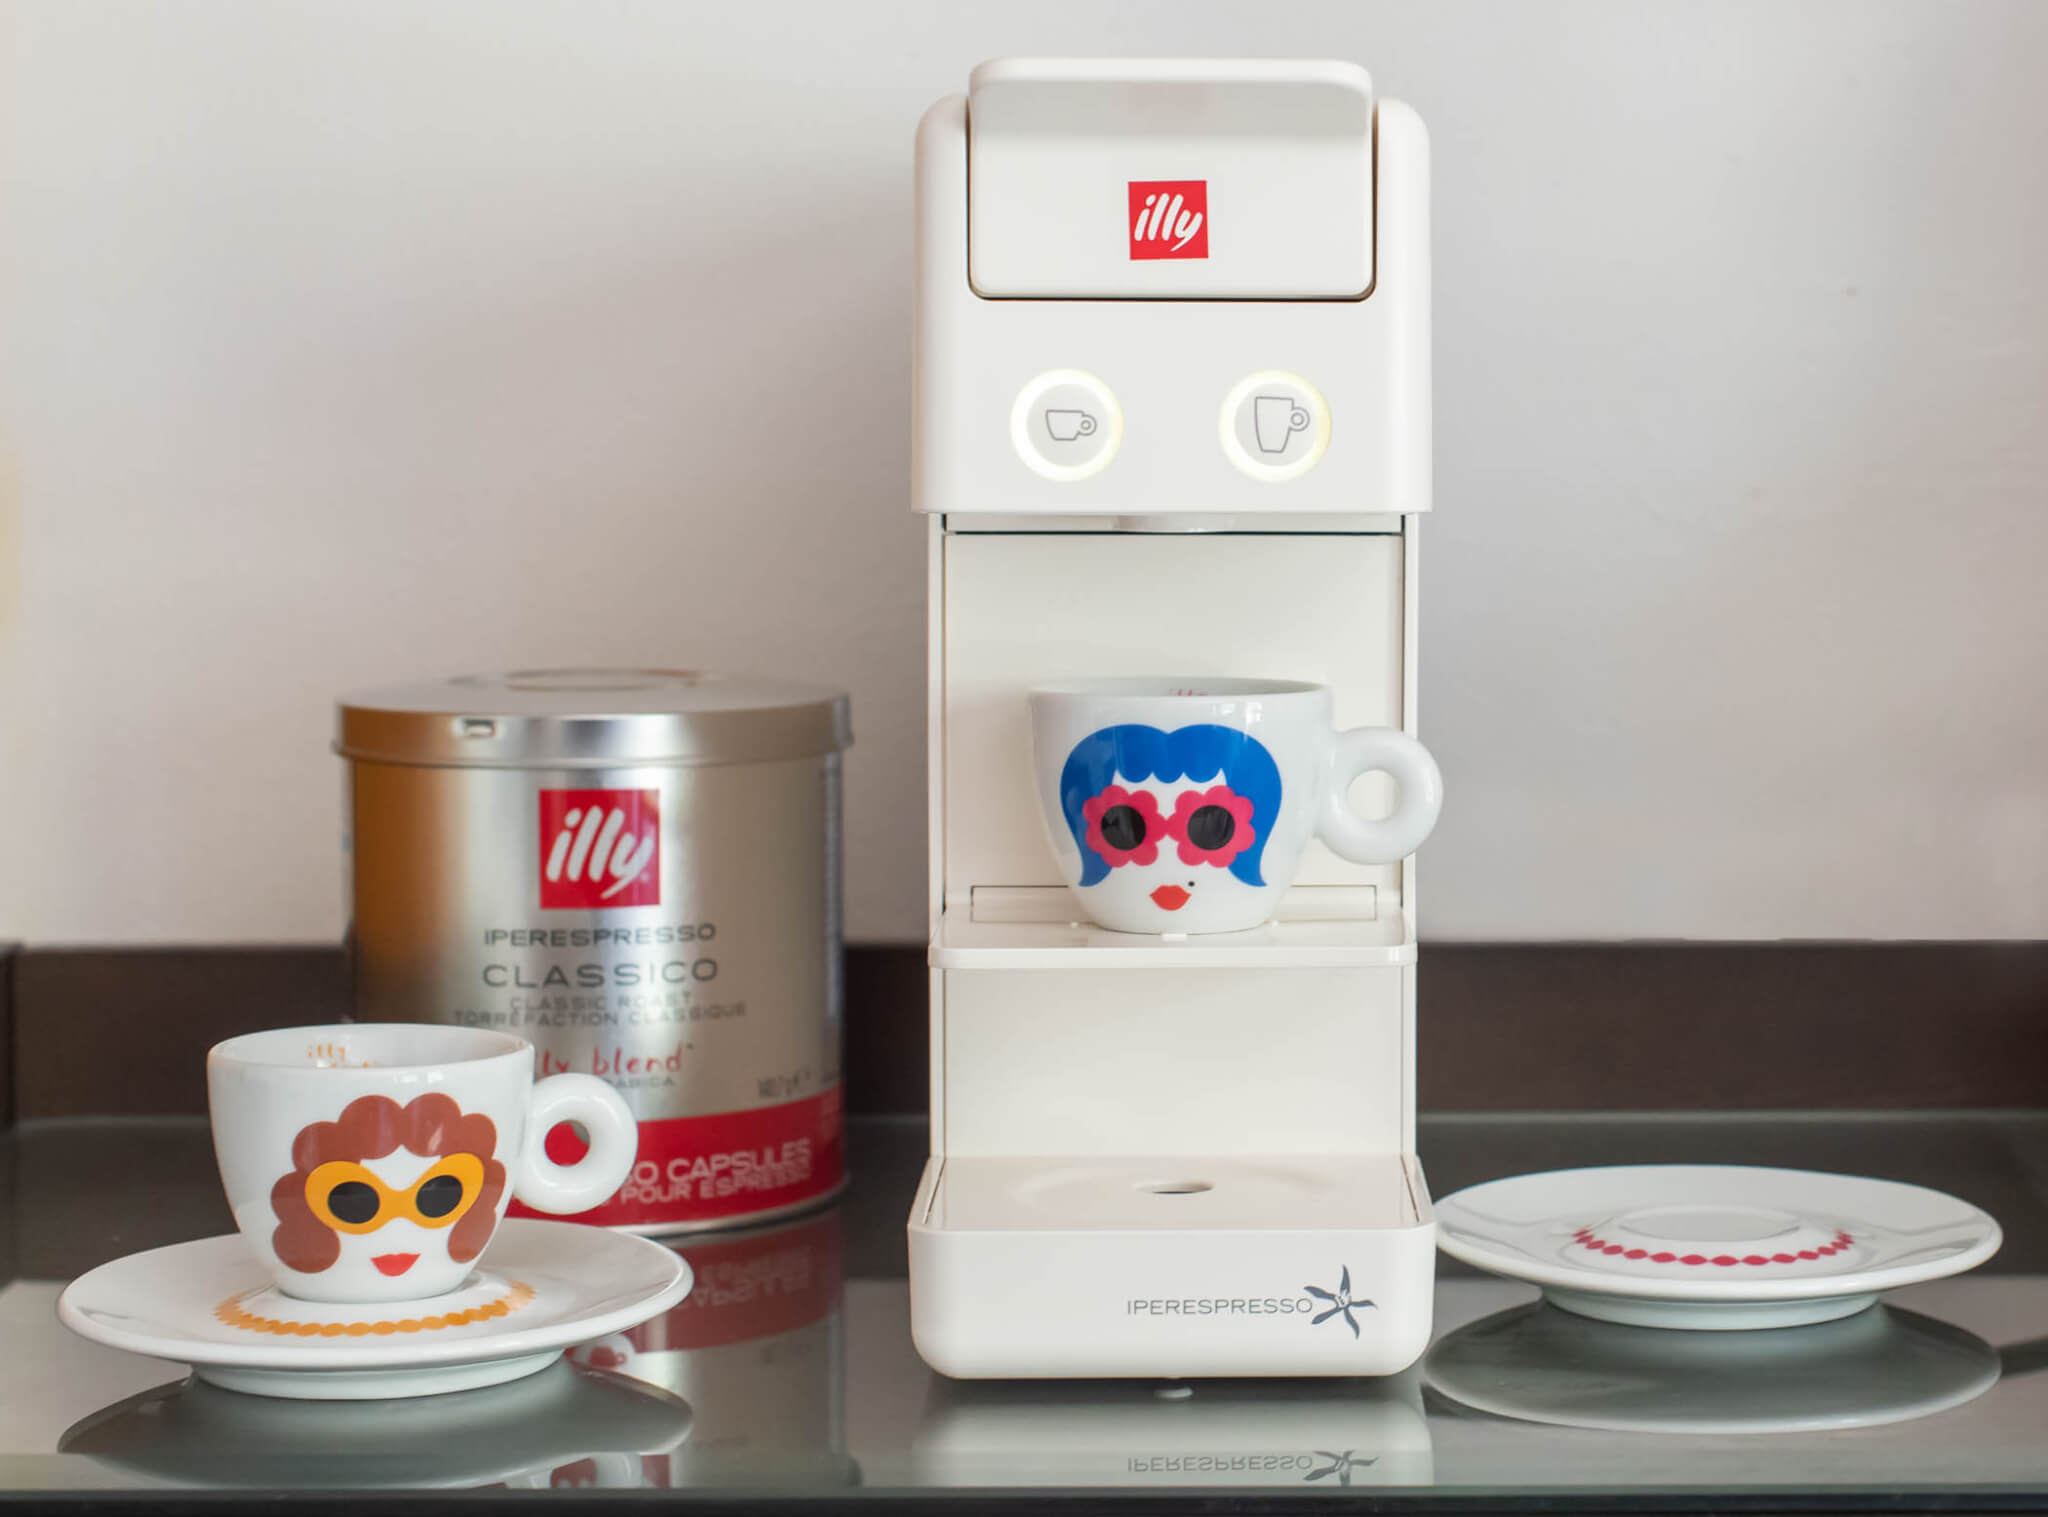 Morning Espresso with illy